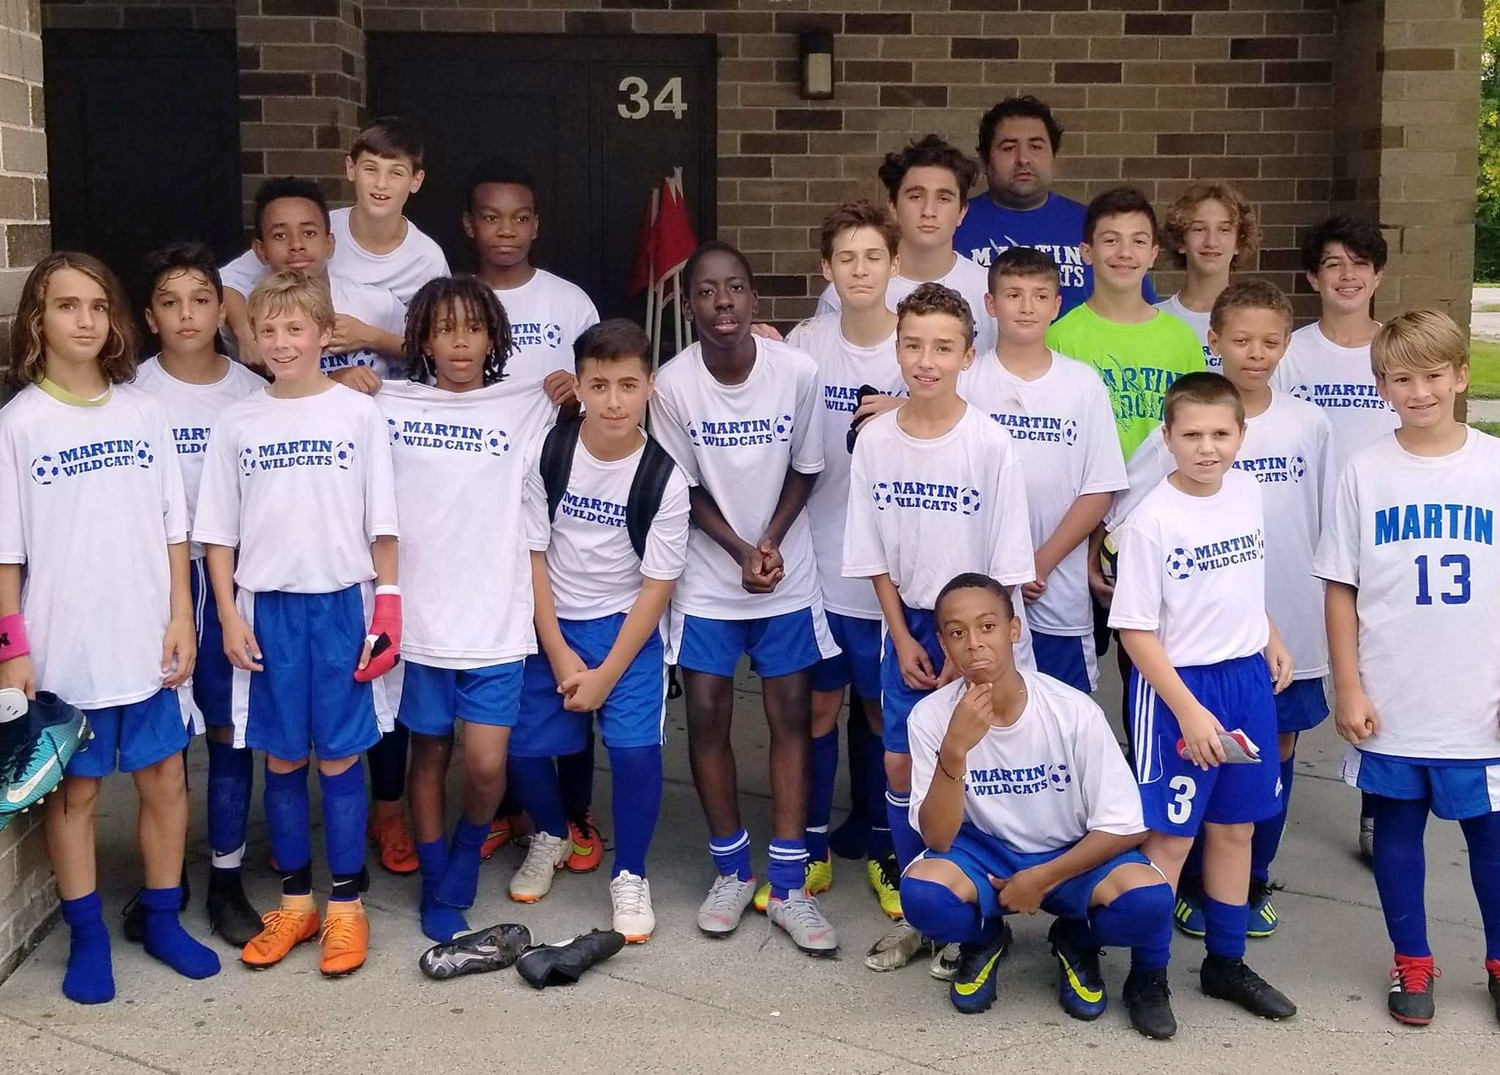 Martin Middle School Soccer Team